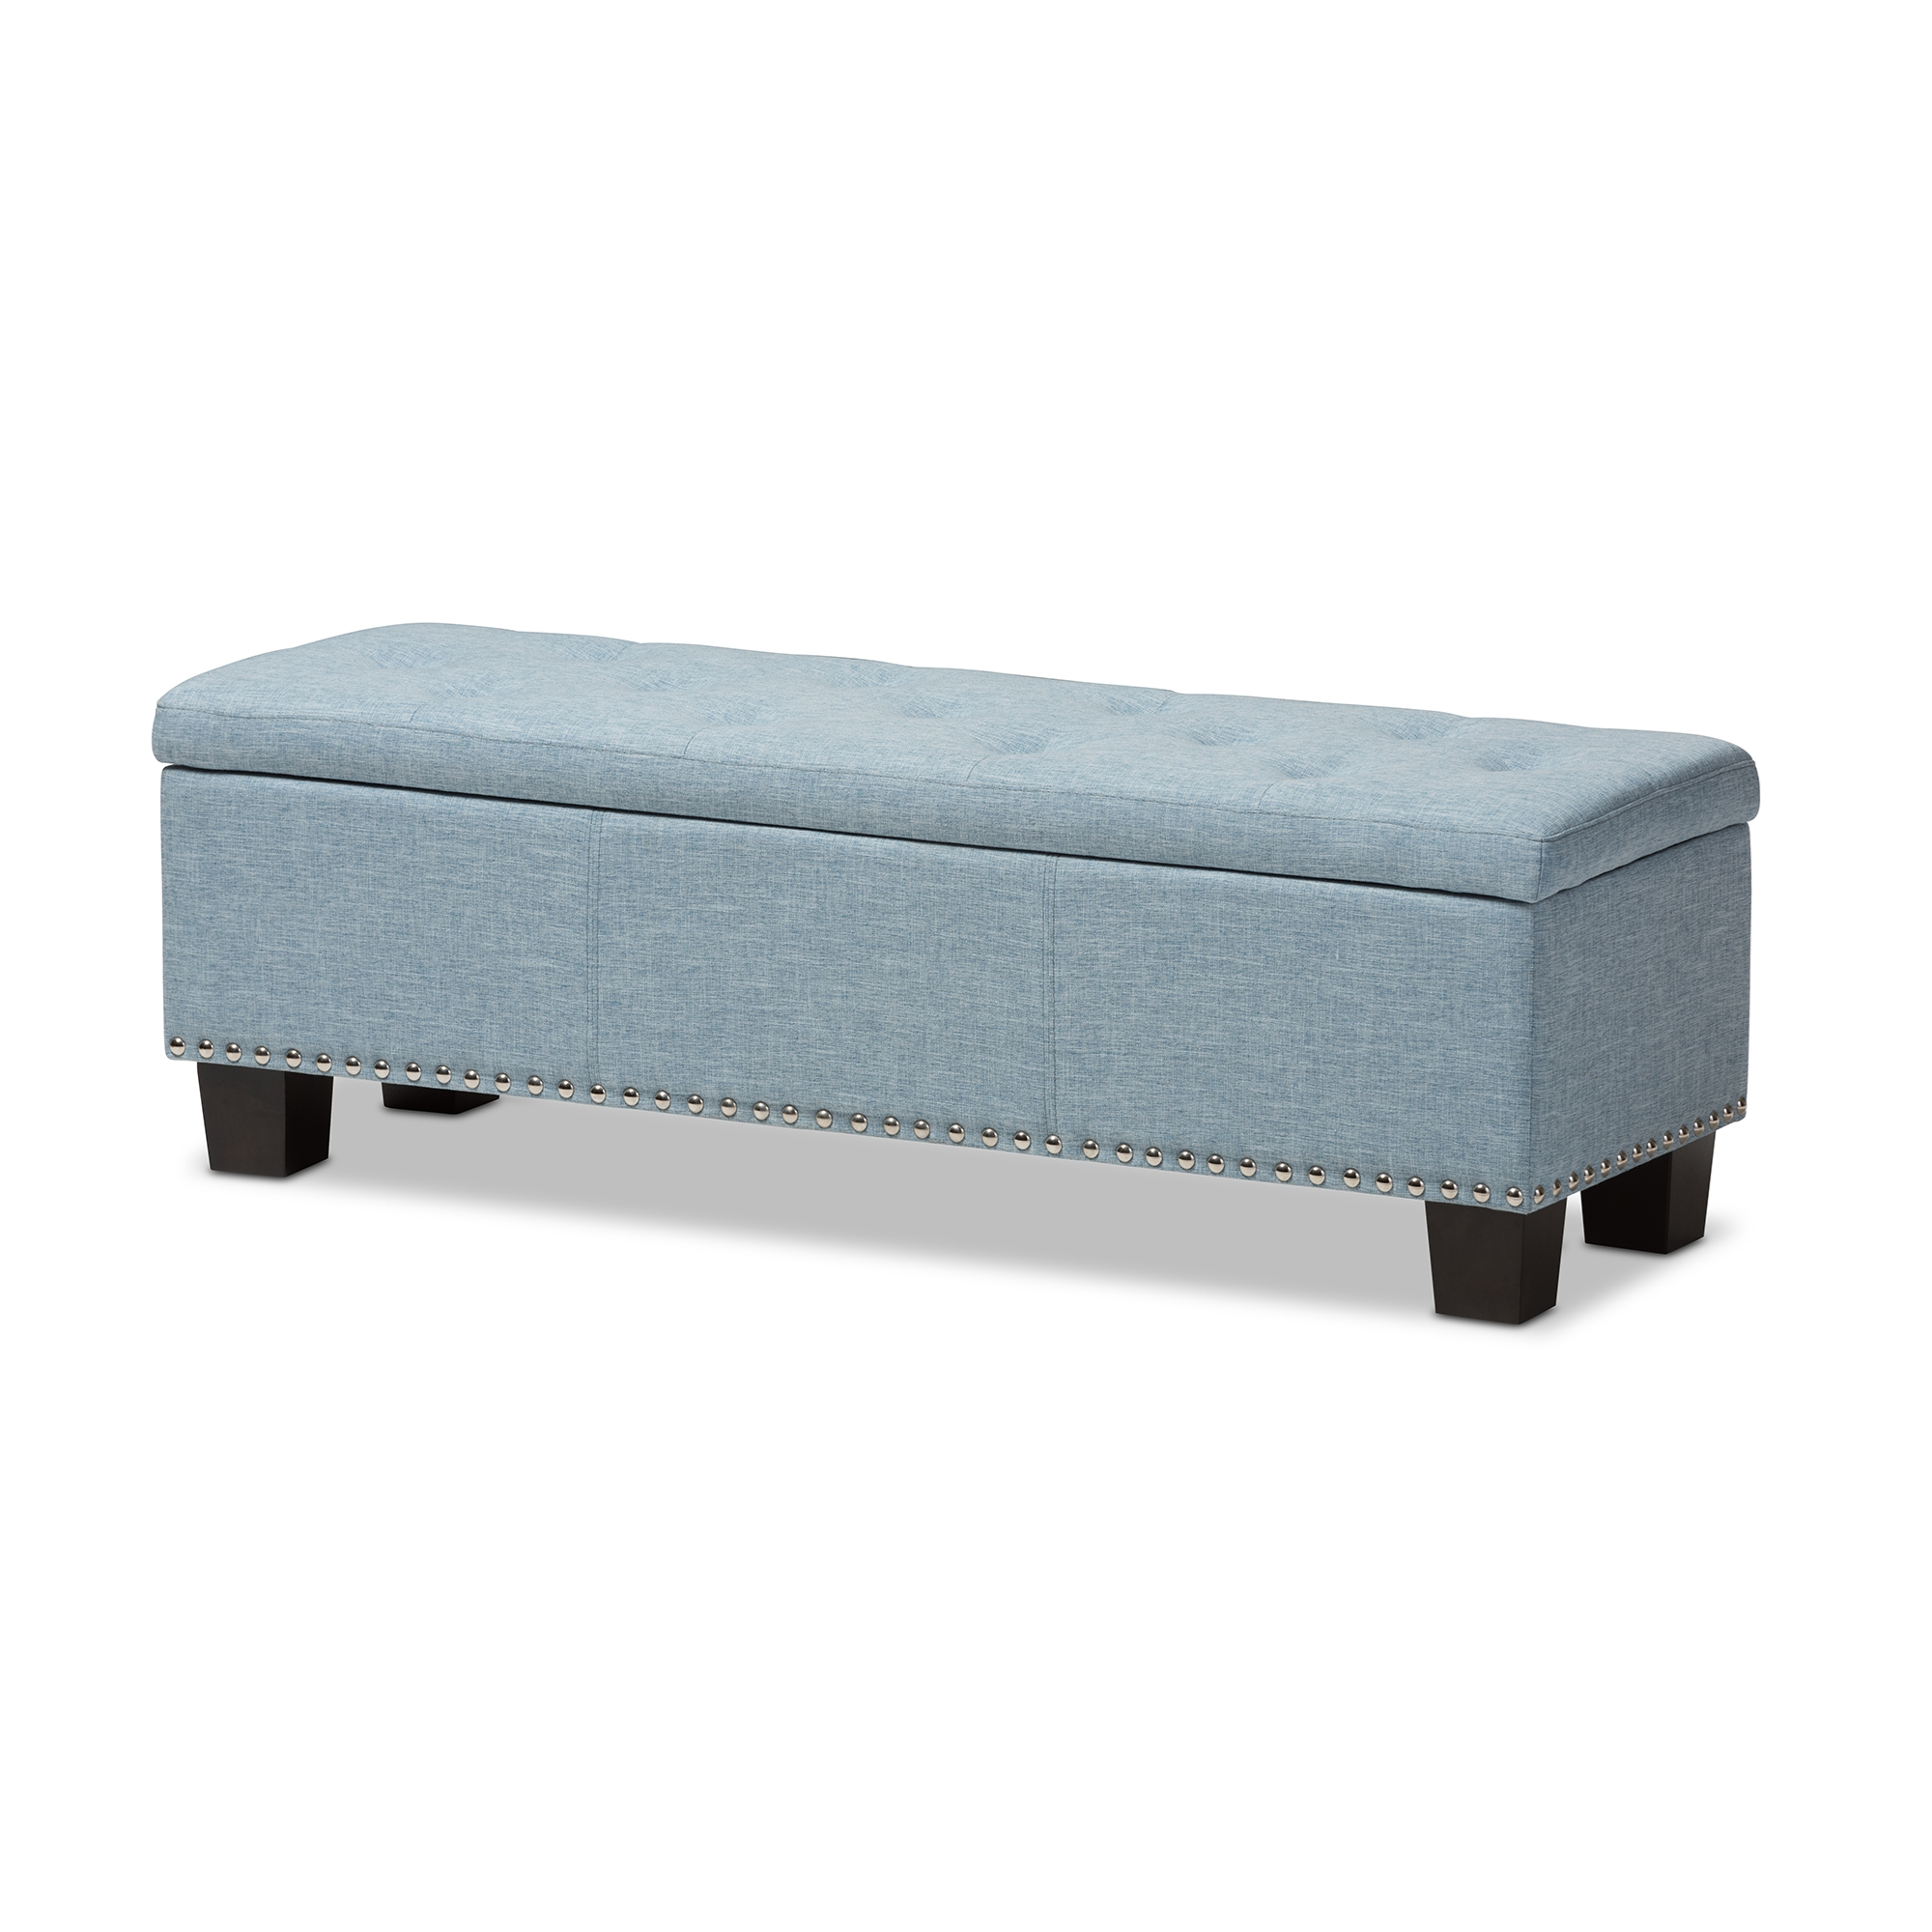 Merveilleux Baxton Studio Hannah Modern And Contemporary Light Blue Fabric Upholstered  Button Tufting Storage Ottoman Bench ...